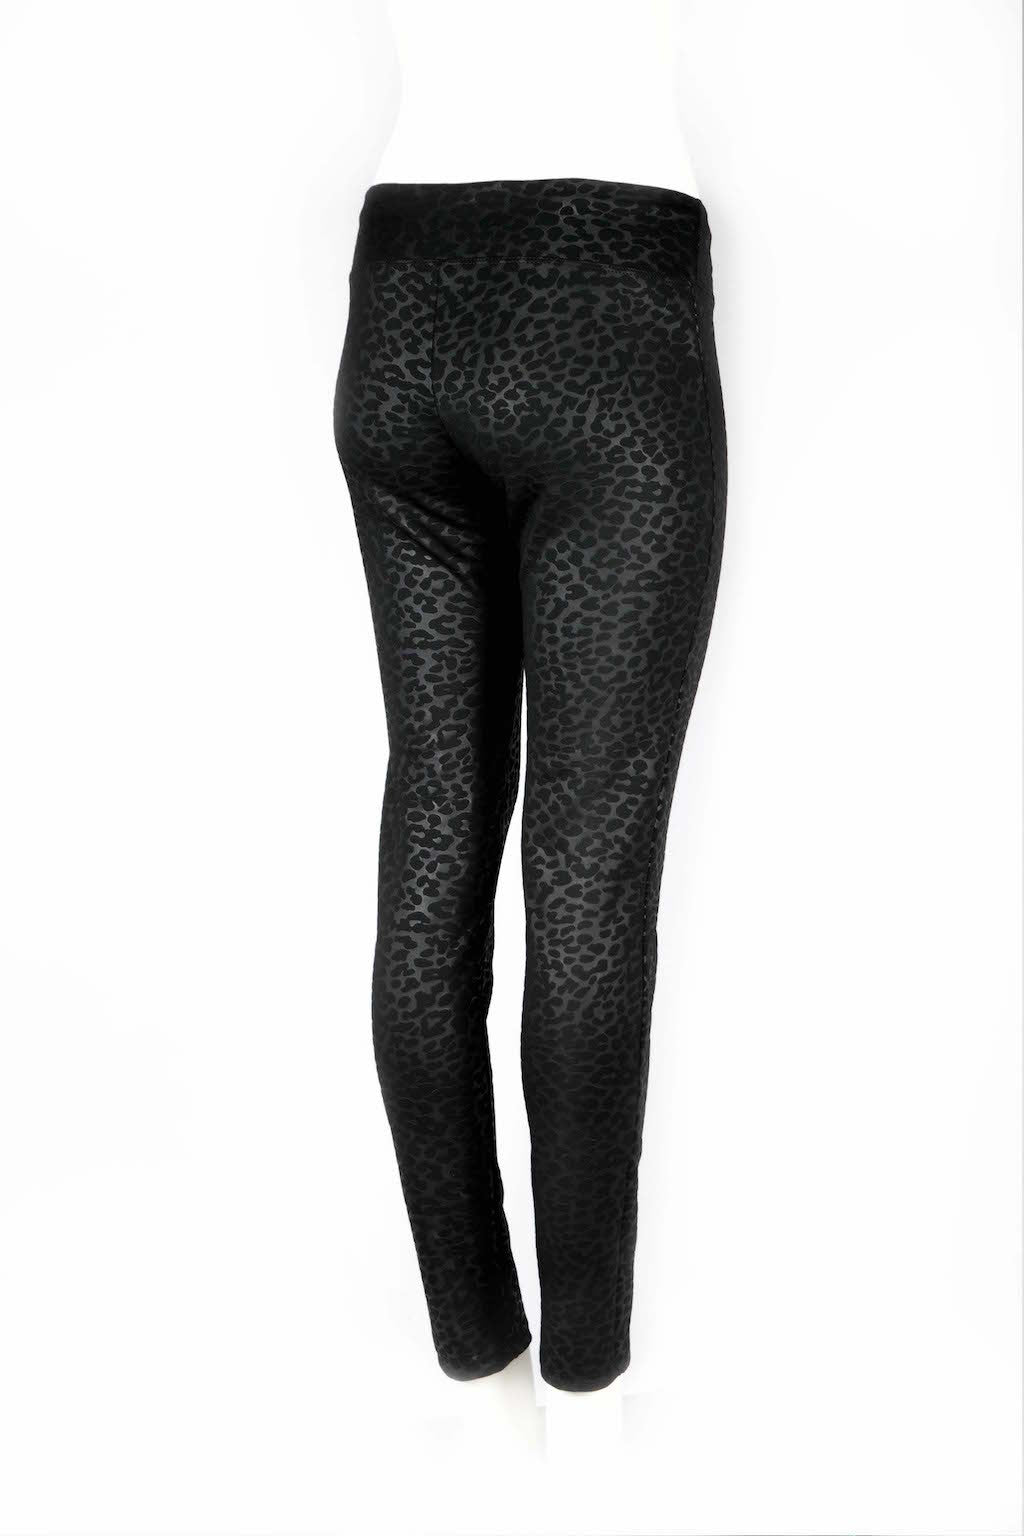 Electra Leopard Fitted Scuba Pants - ANA MARIA KIM  - 9